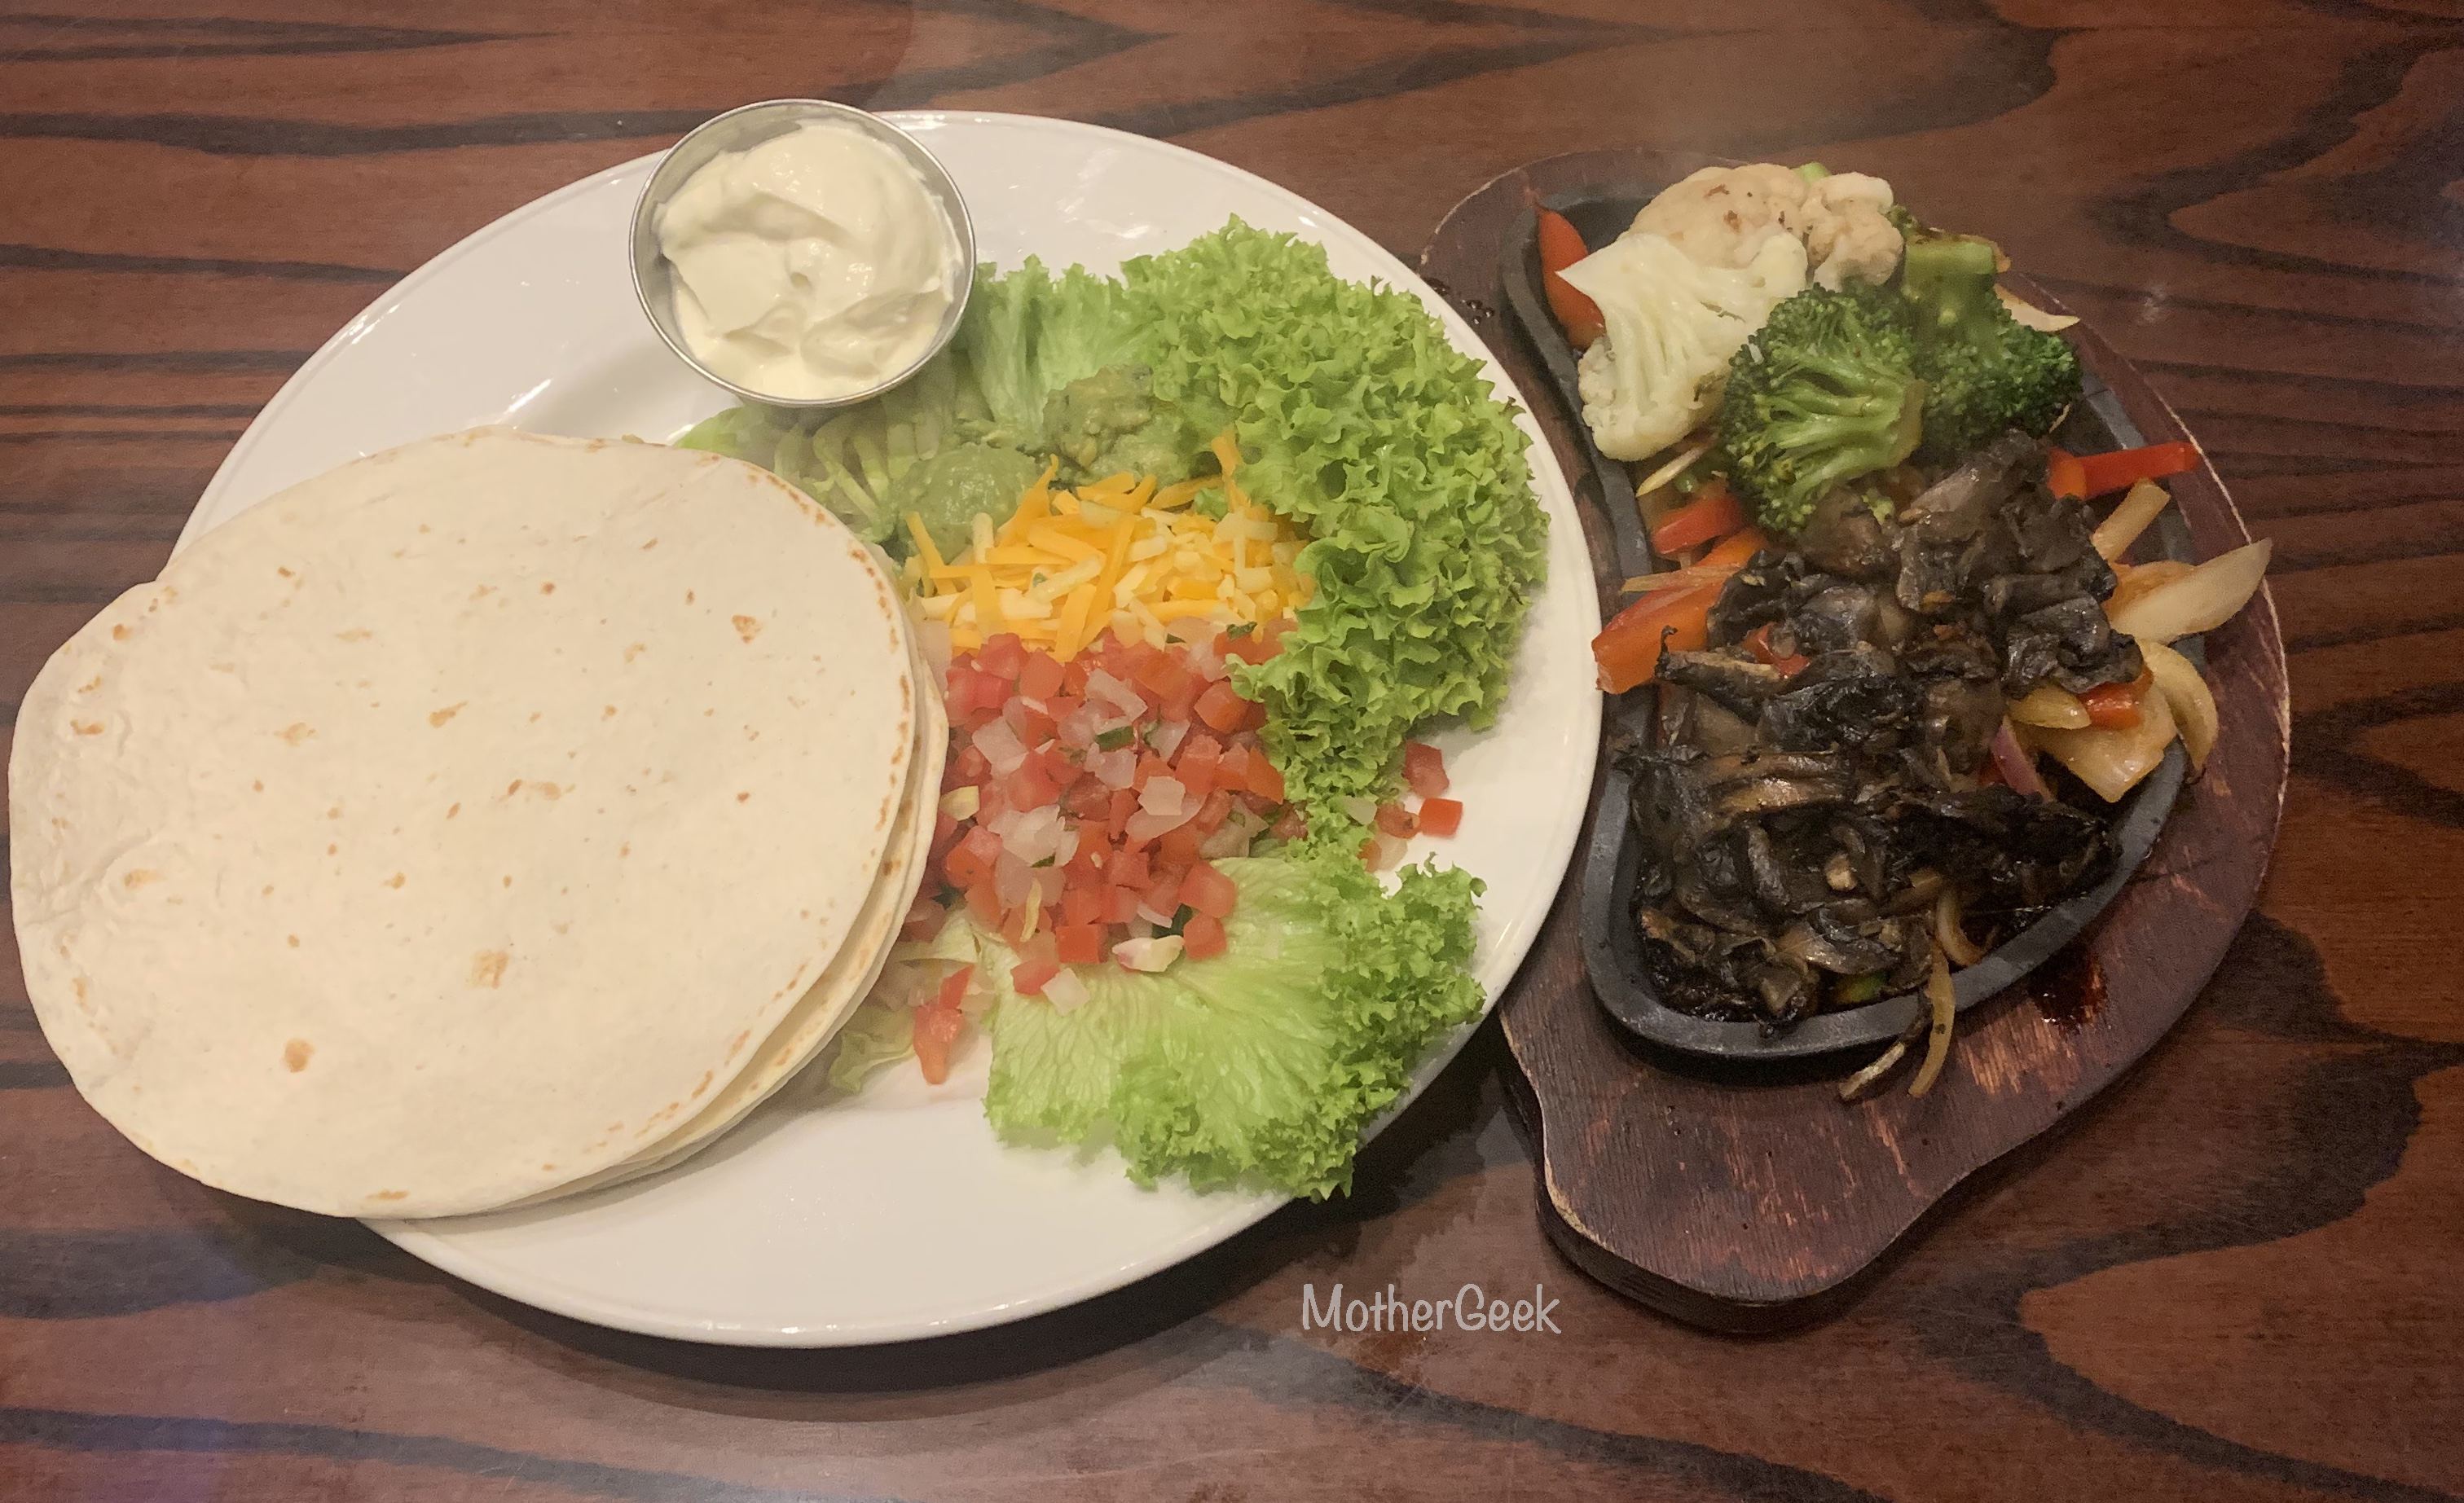 Mother's Day Menu At Hard Rock Cafe Manchester Veggie Fajitas